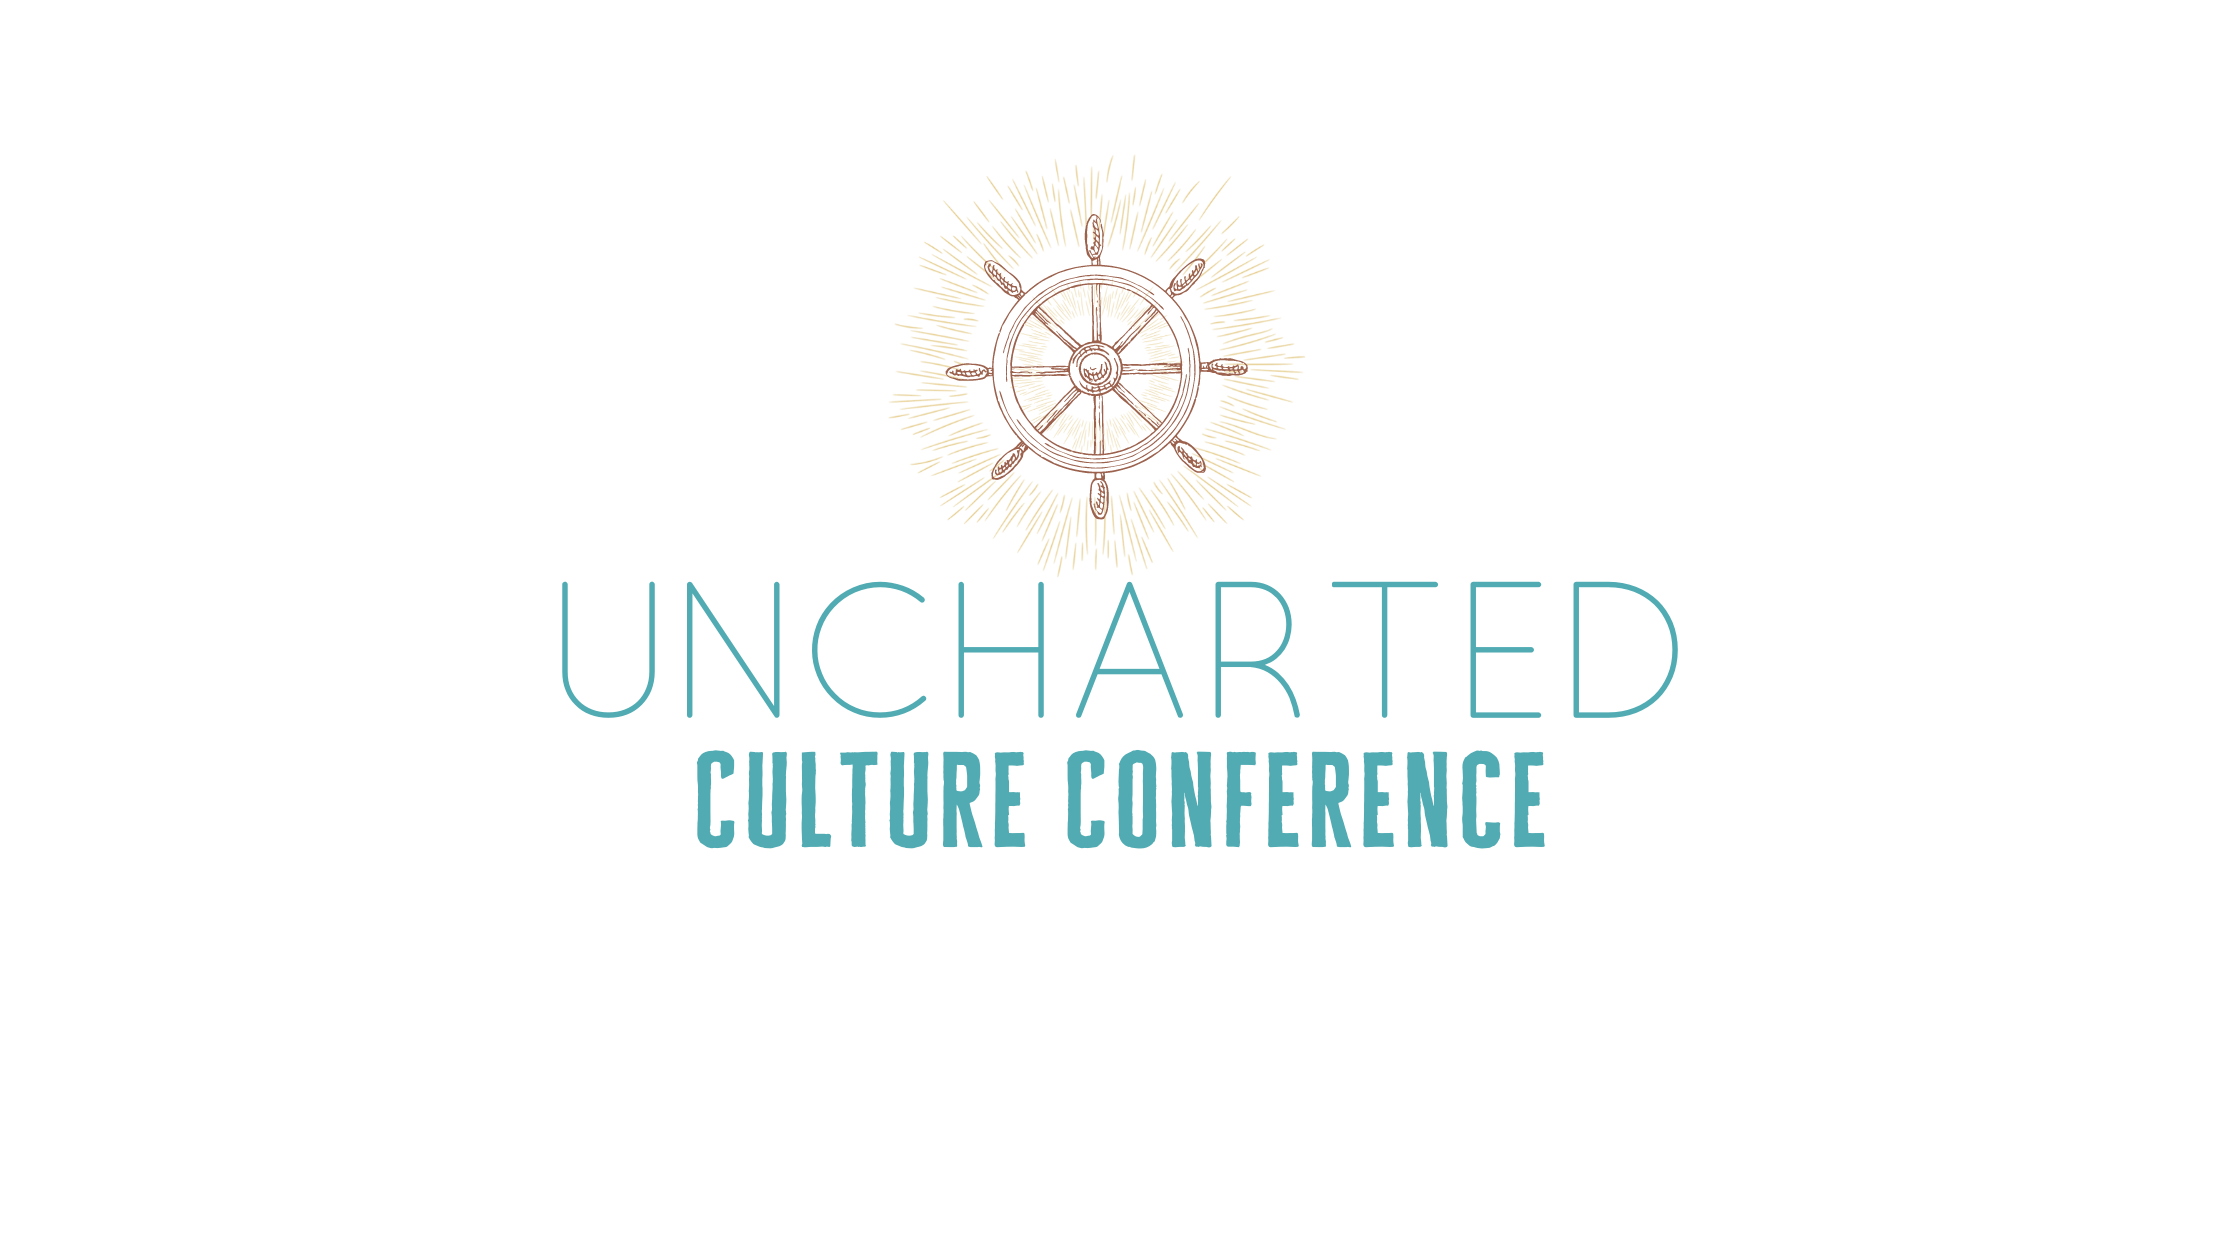 Uncharted Veterinary Culture Conference 2021